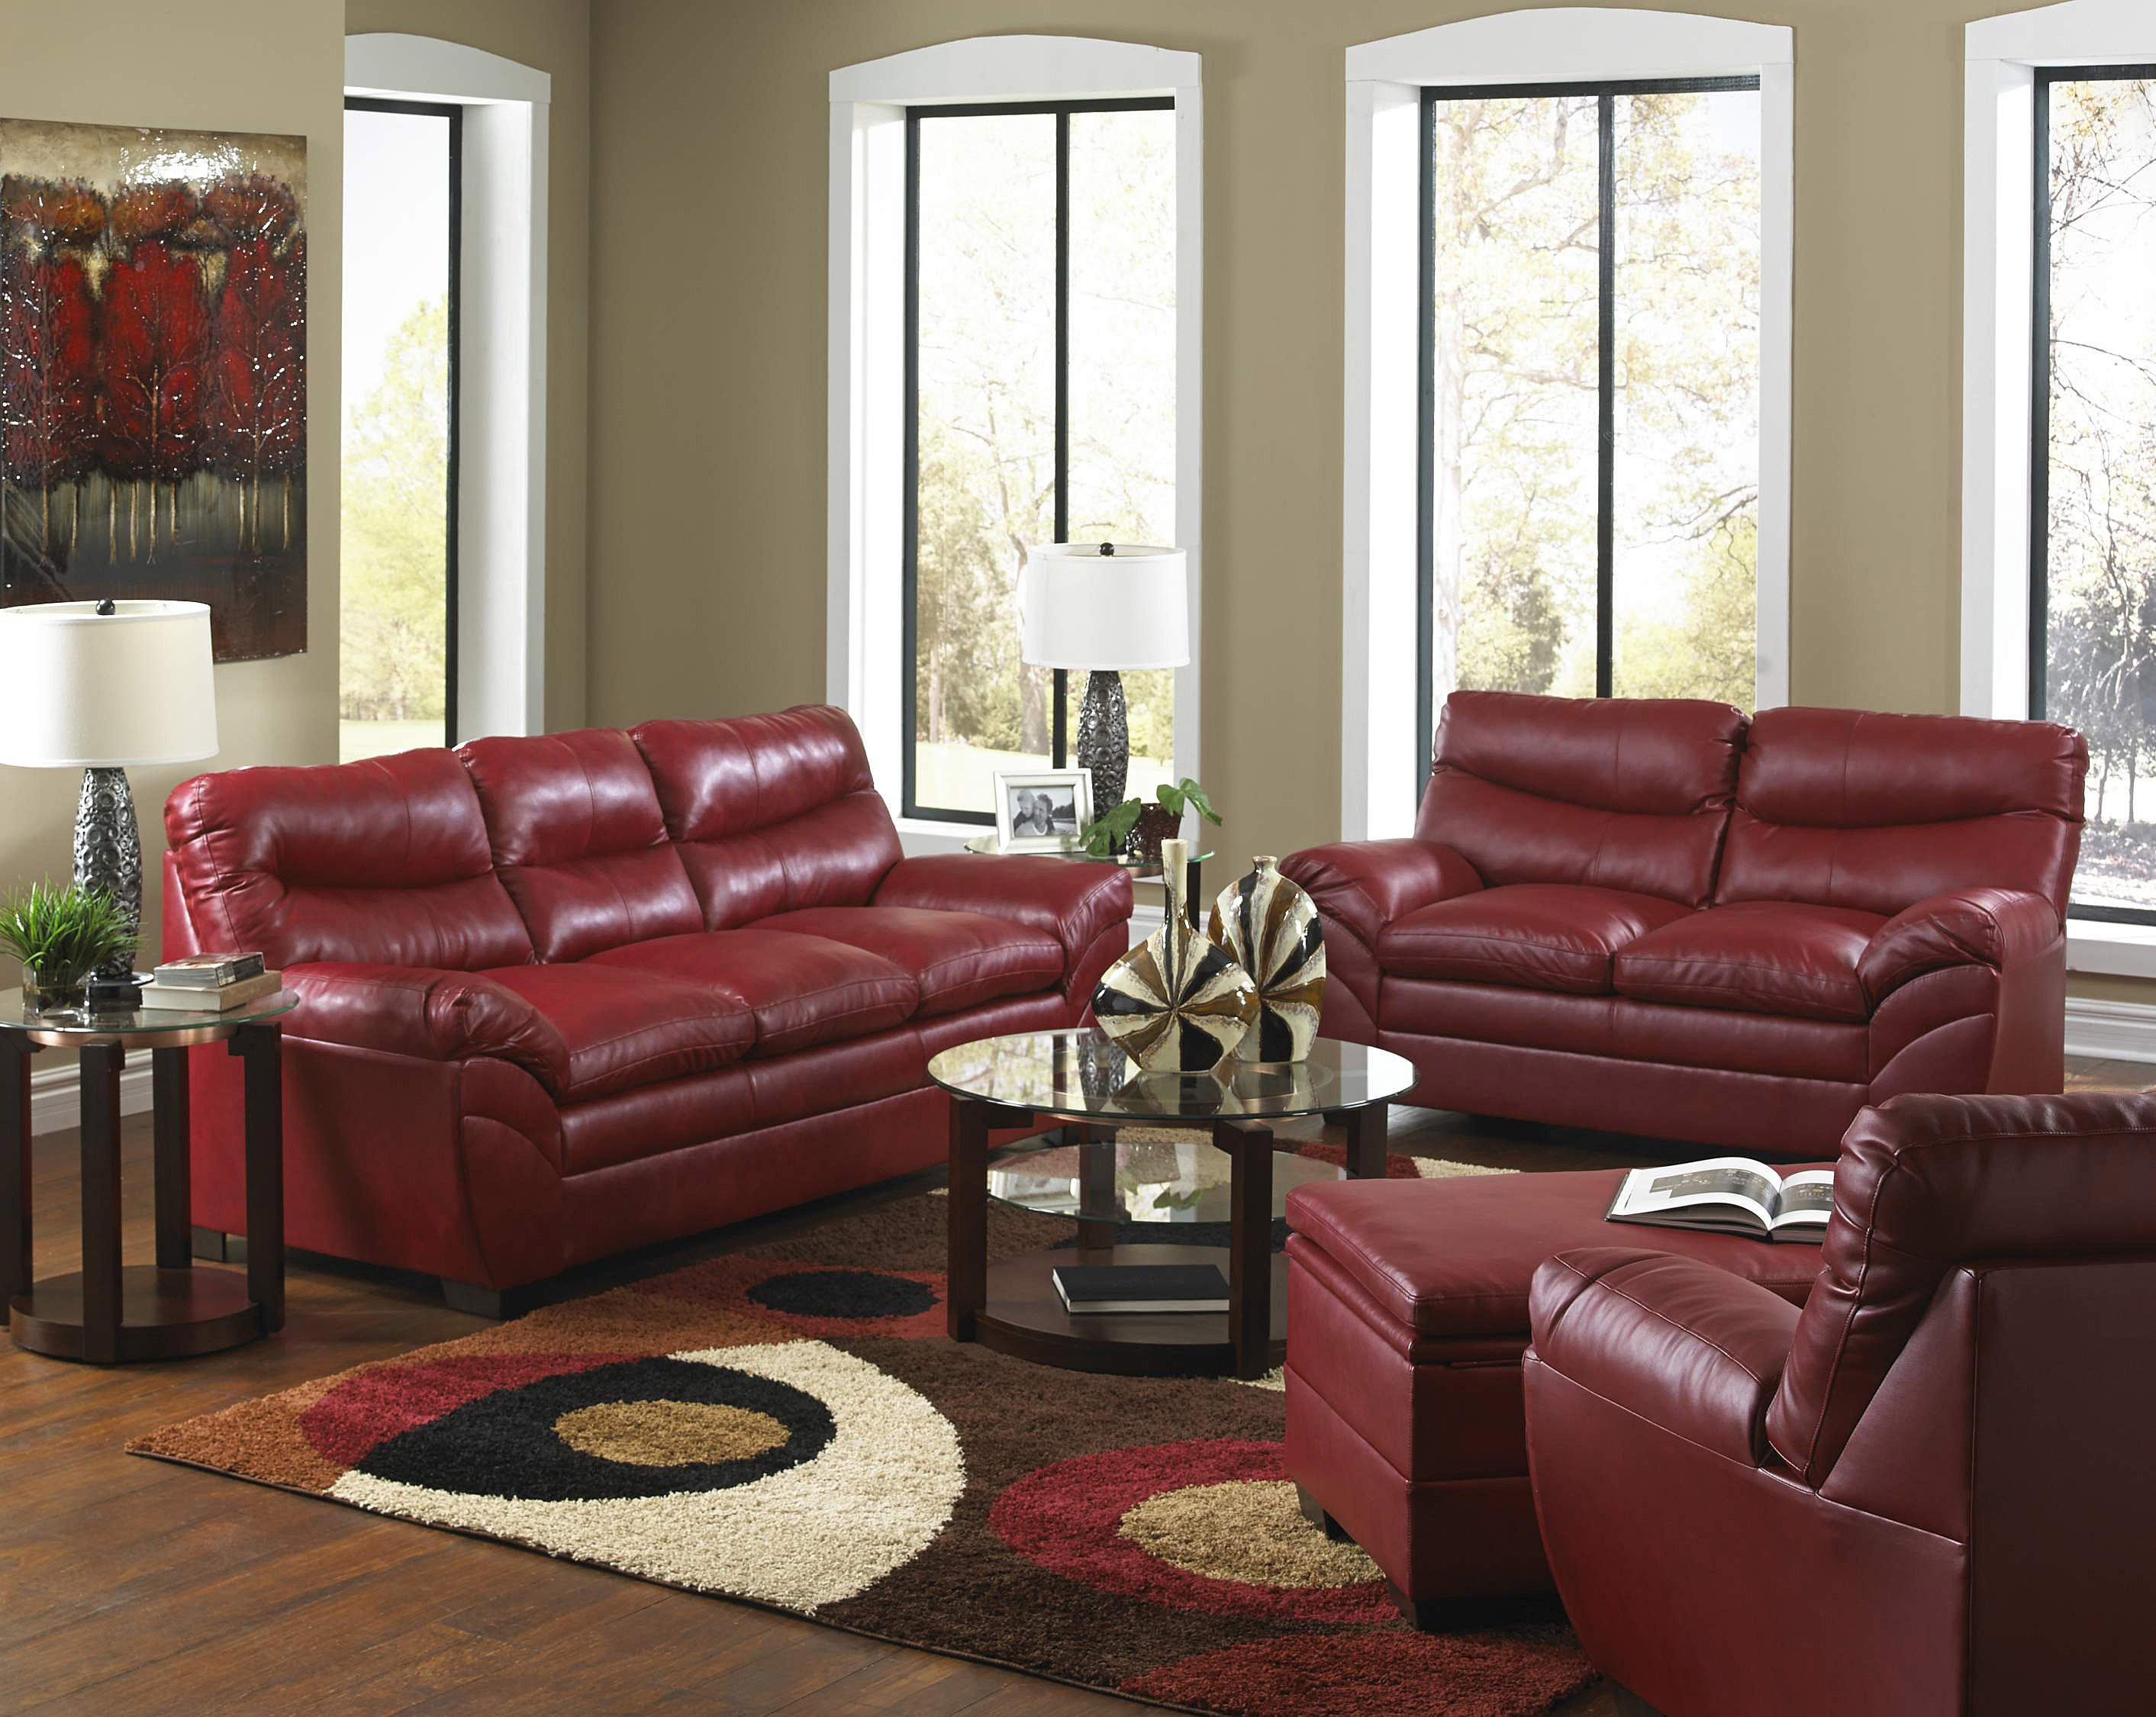 United Furniture Industries 9515 Casual Sectional Sofa | Bullard Furniture  | Sectional Sofas Fayetteville, NC